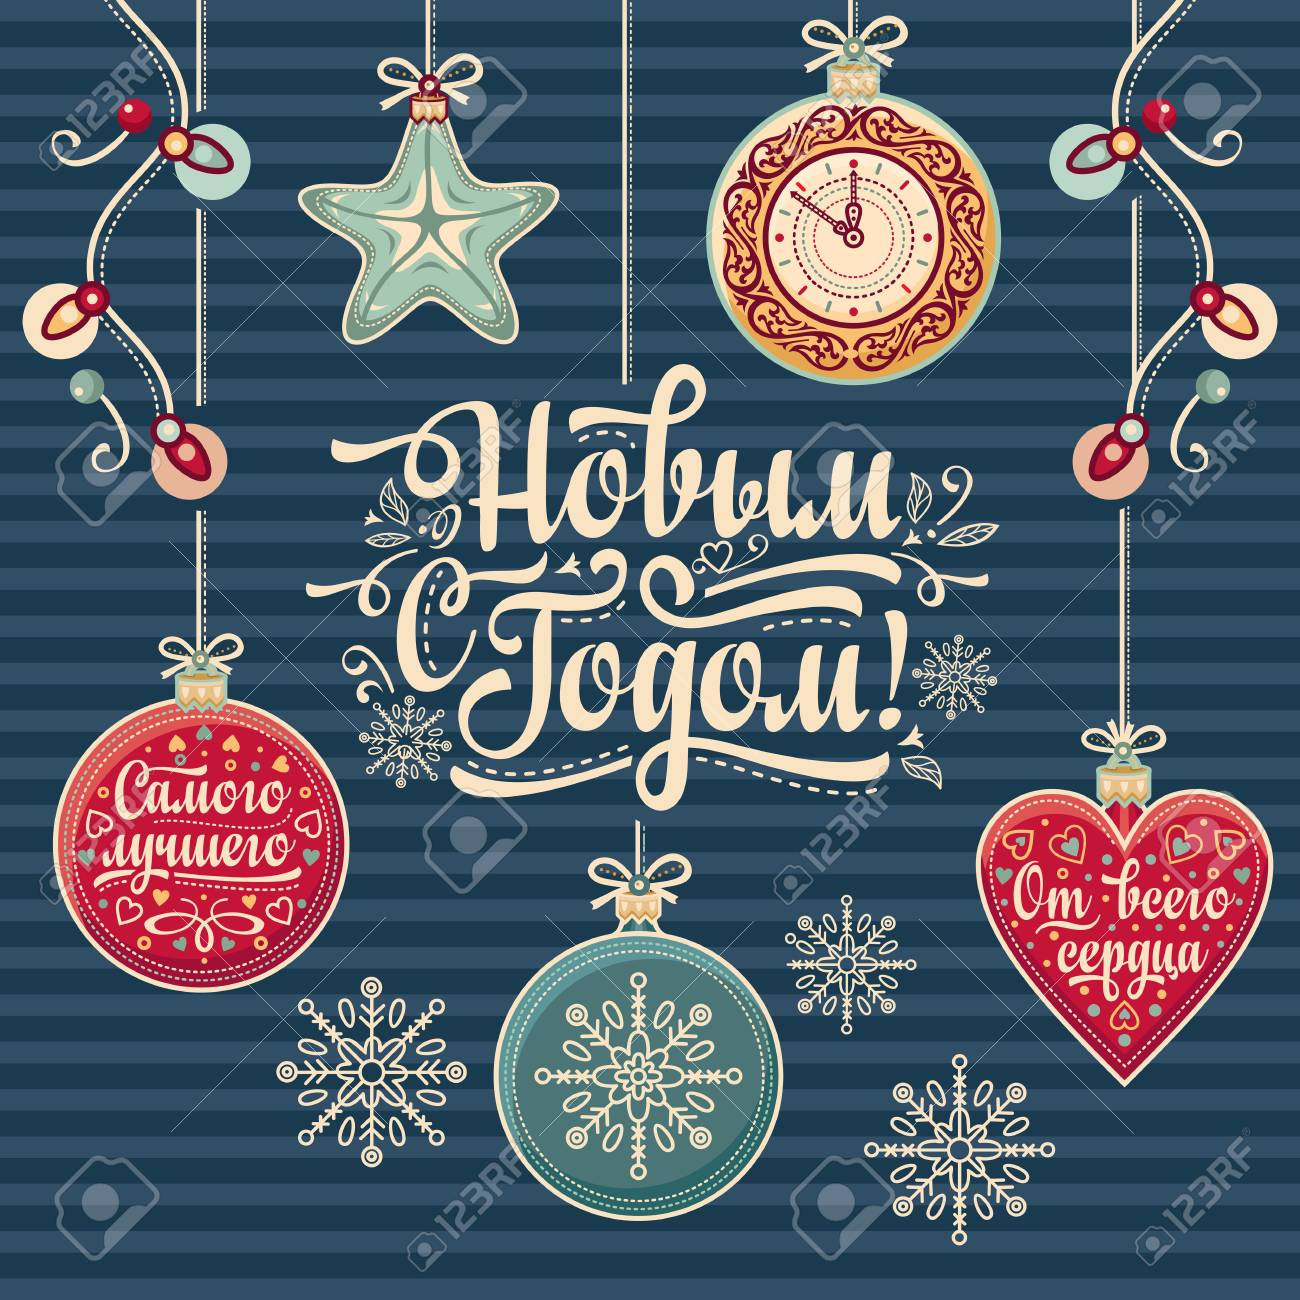 Russian text happy new year illustration winter holiday greeting russian text happy new year illustration winter holiday greeting card cyrillic letters kristyandbryce Choice Image